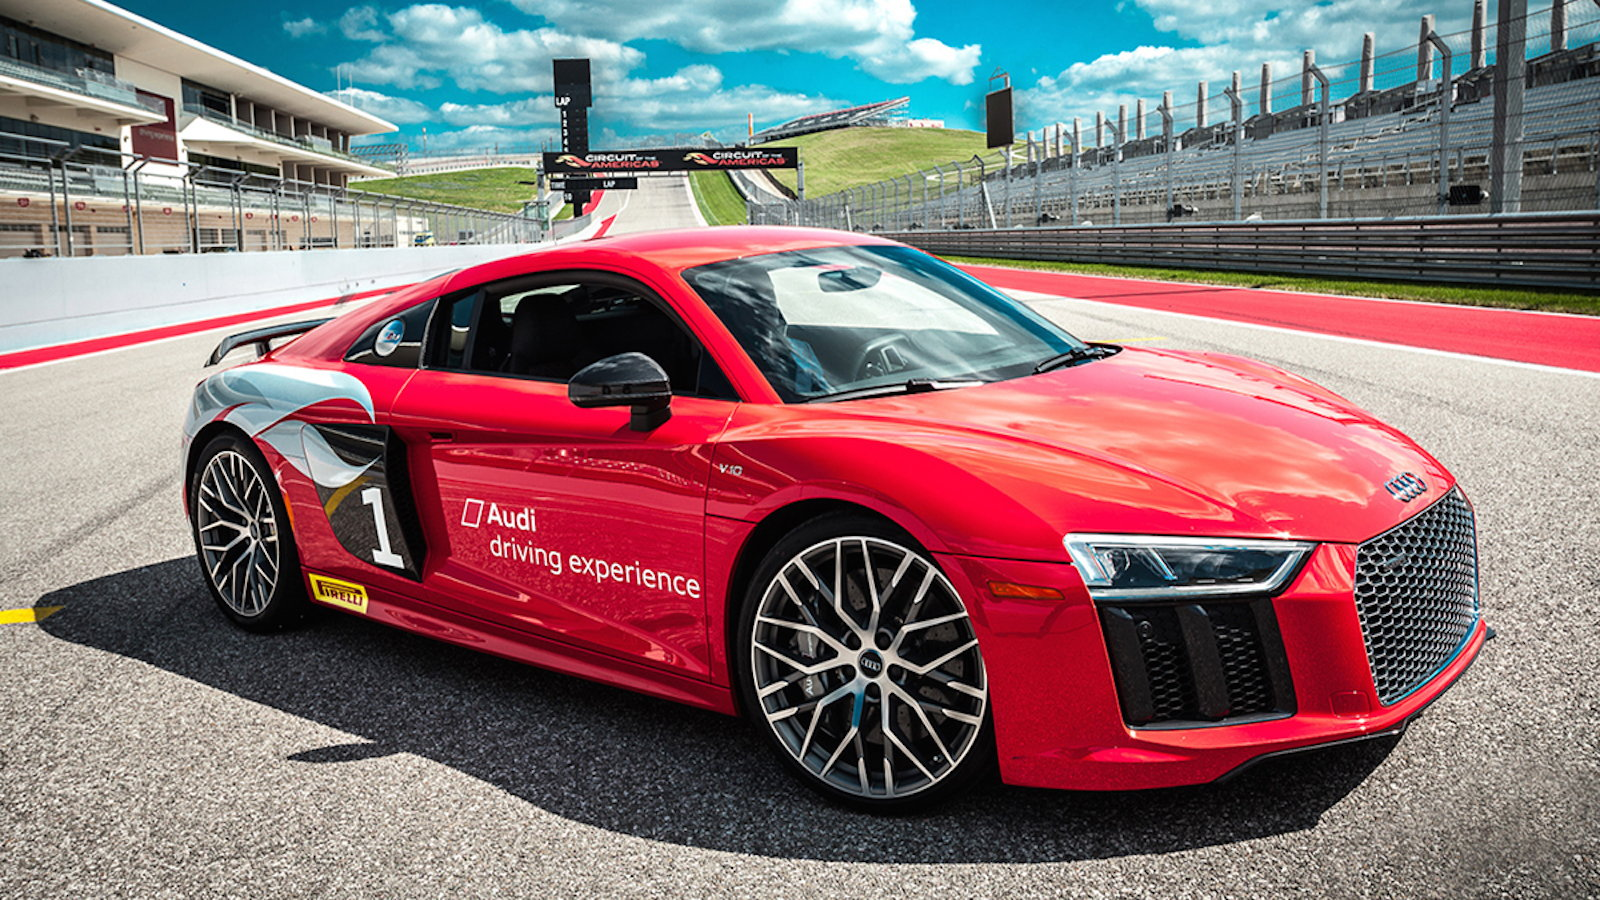 Inside the Audi Driving Experience